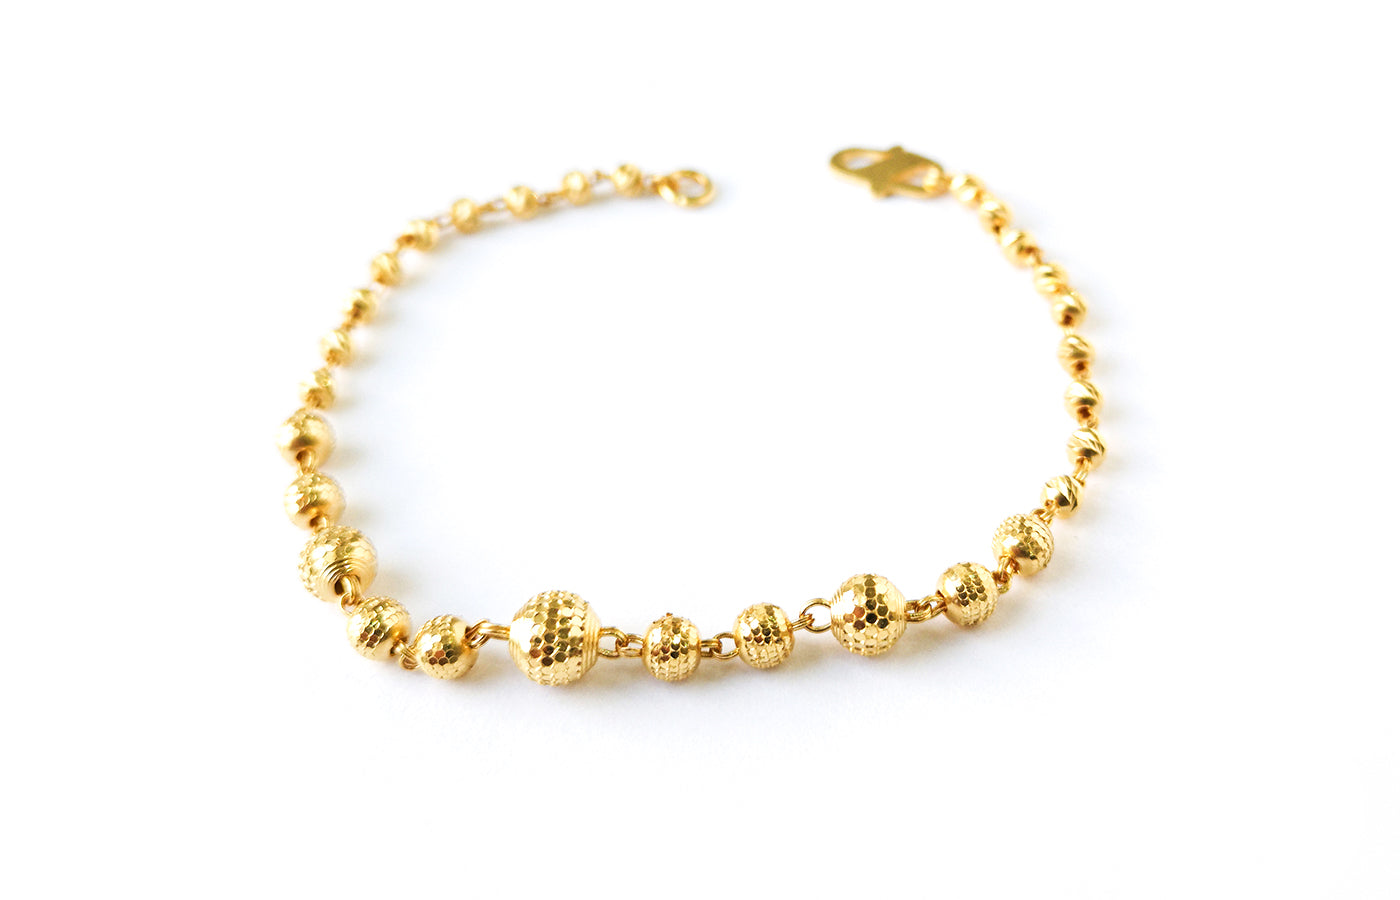 22ct Gold Bracelet with Diamond Cut Design and S Clasp (4.7g) LBR-7606